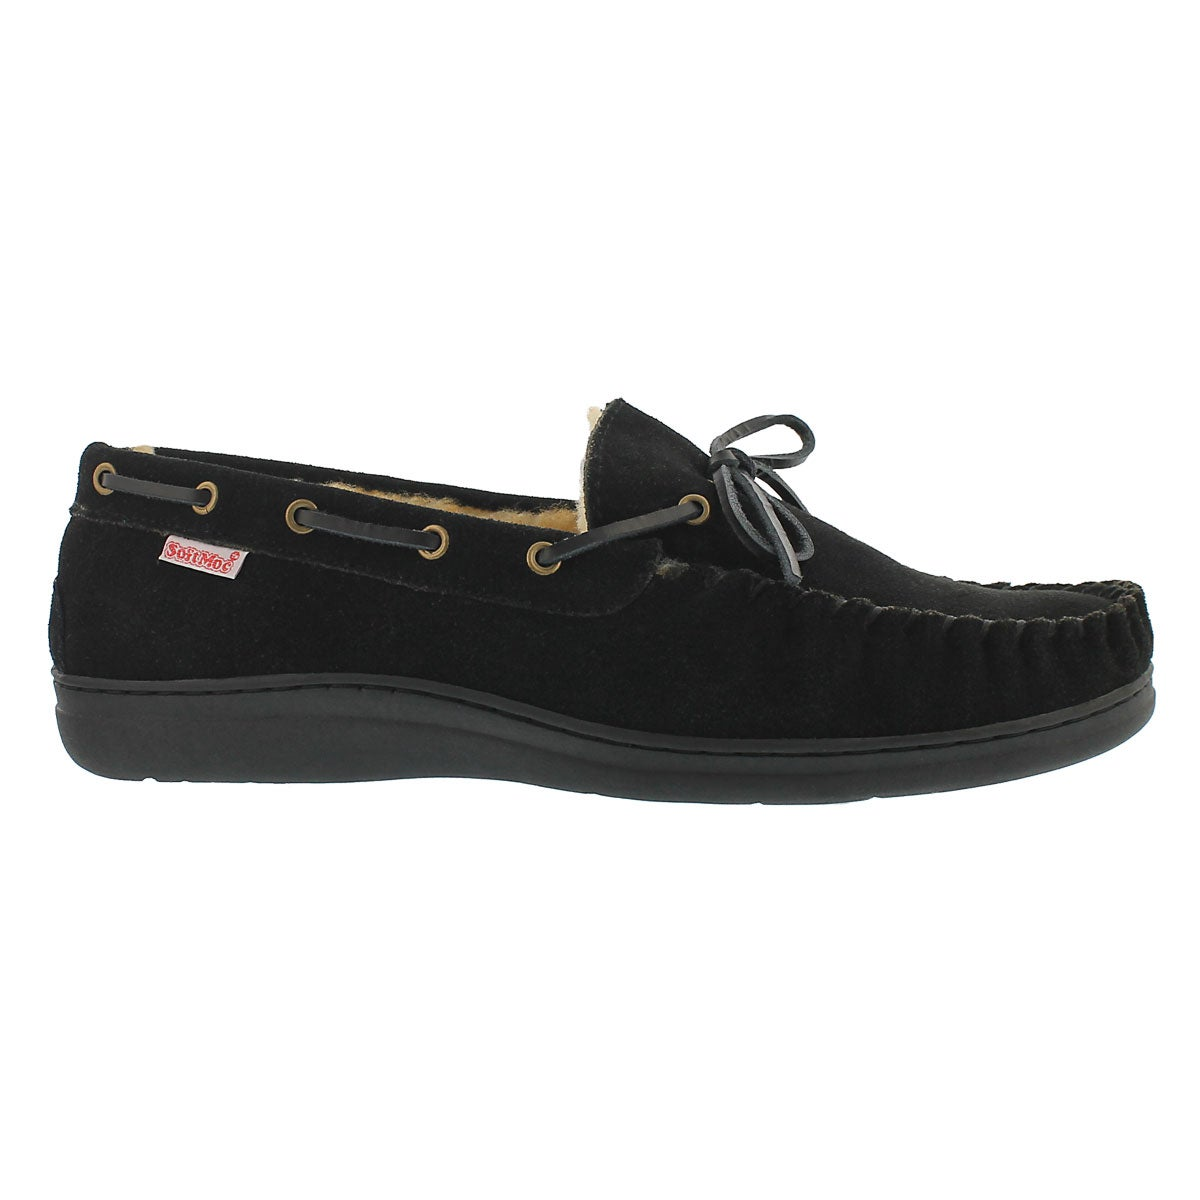 Mns Duke black lined suede mocc